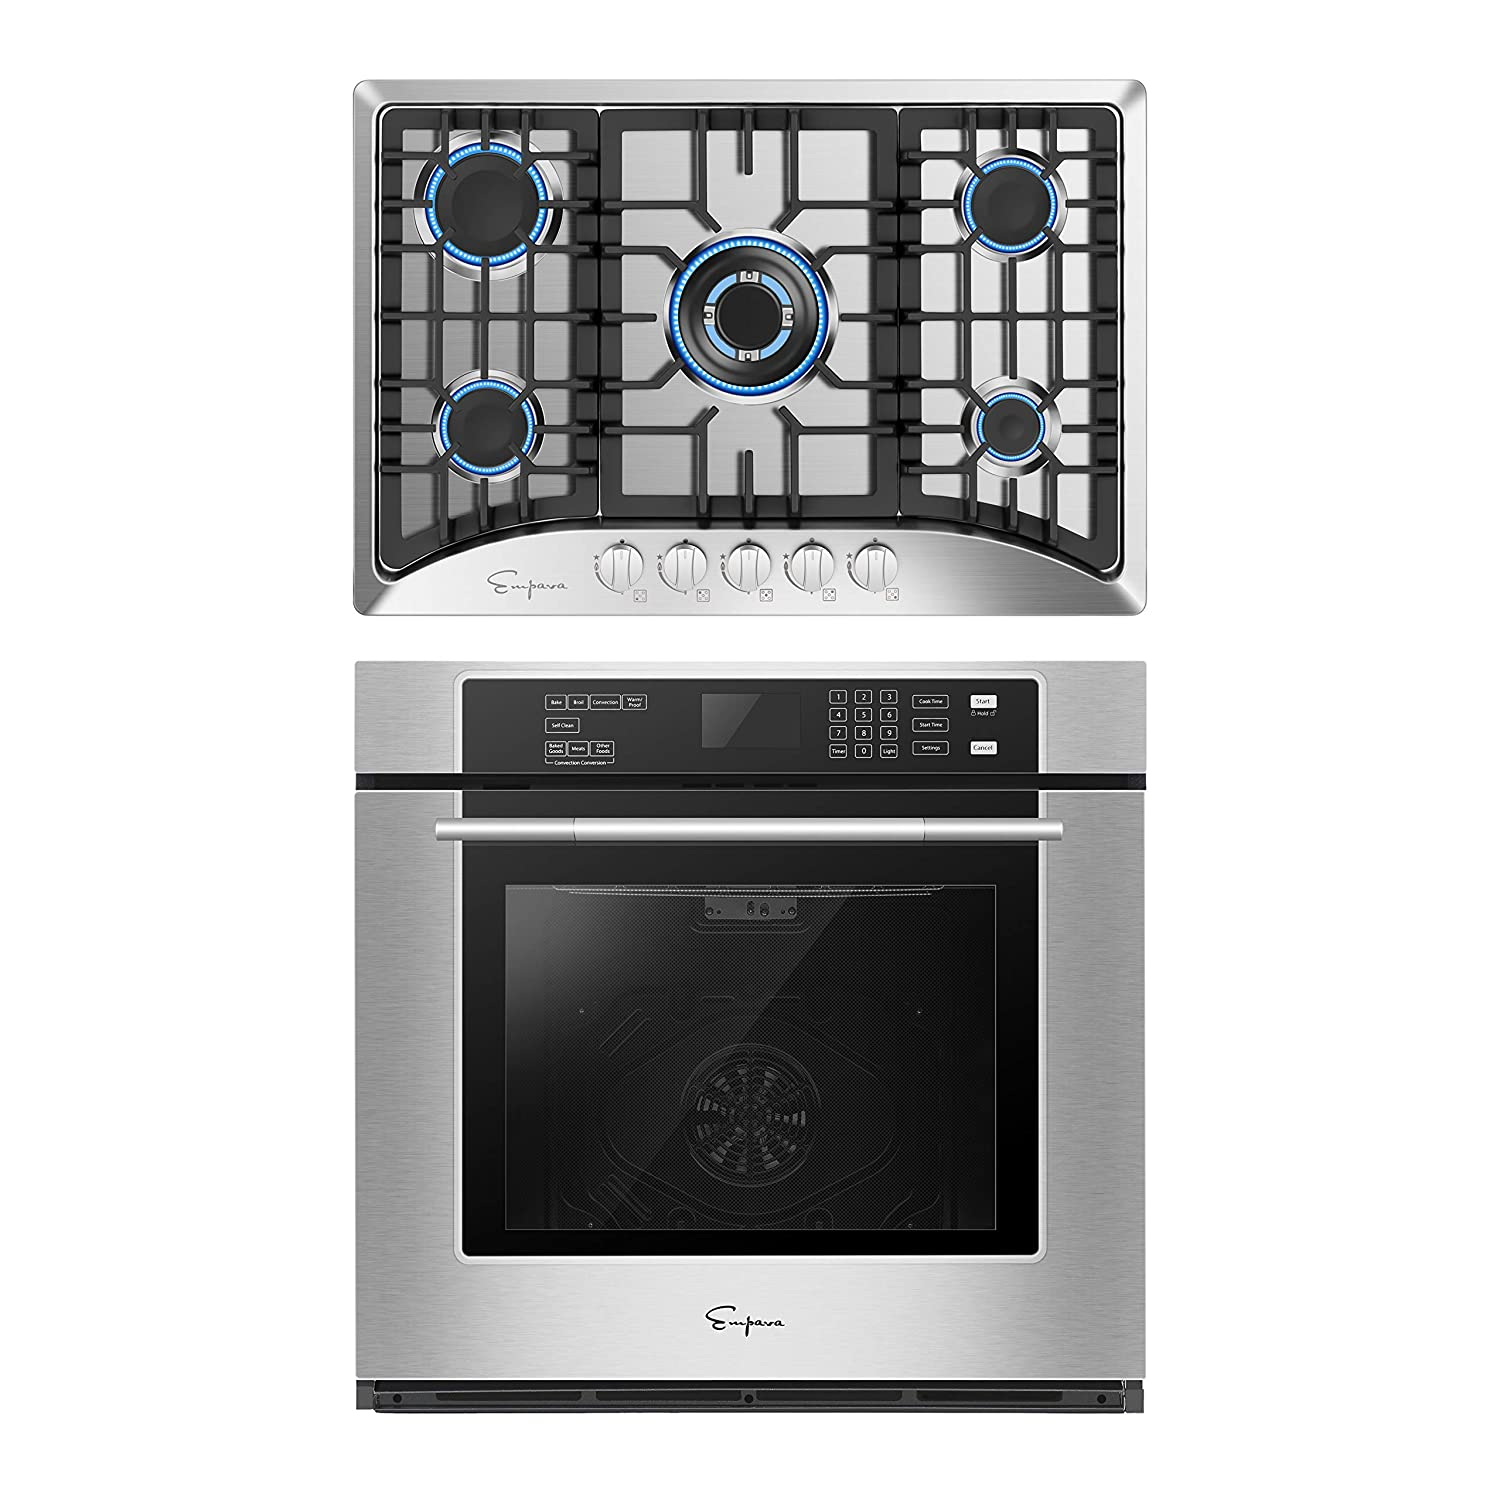 Empava 30 Inch Electric Single Wall Oven with Self-cleaning Convection Fan and Gas Cooktop Stove LPG/NG Convertible with 5 Italy SABAF Burners in Stainless Steel